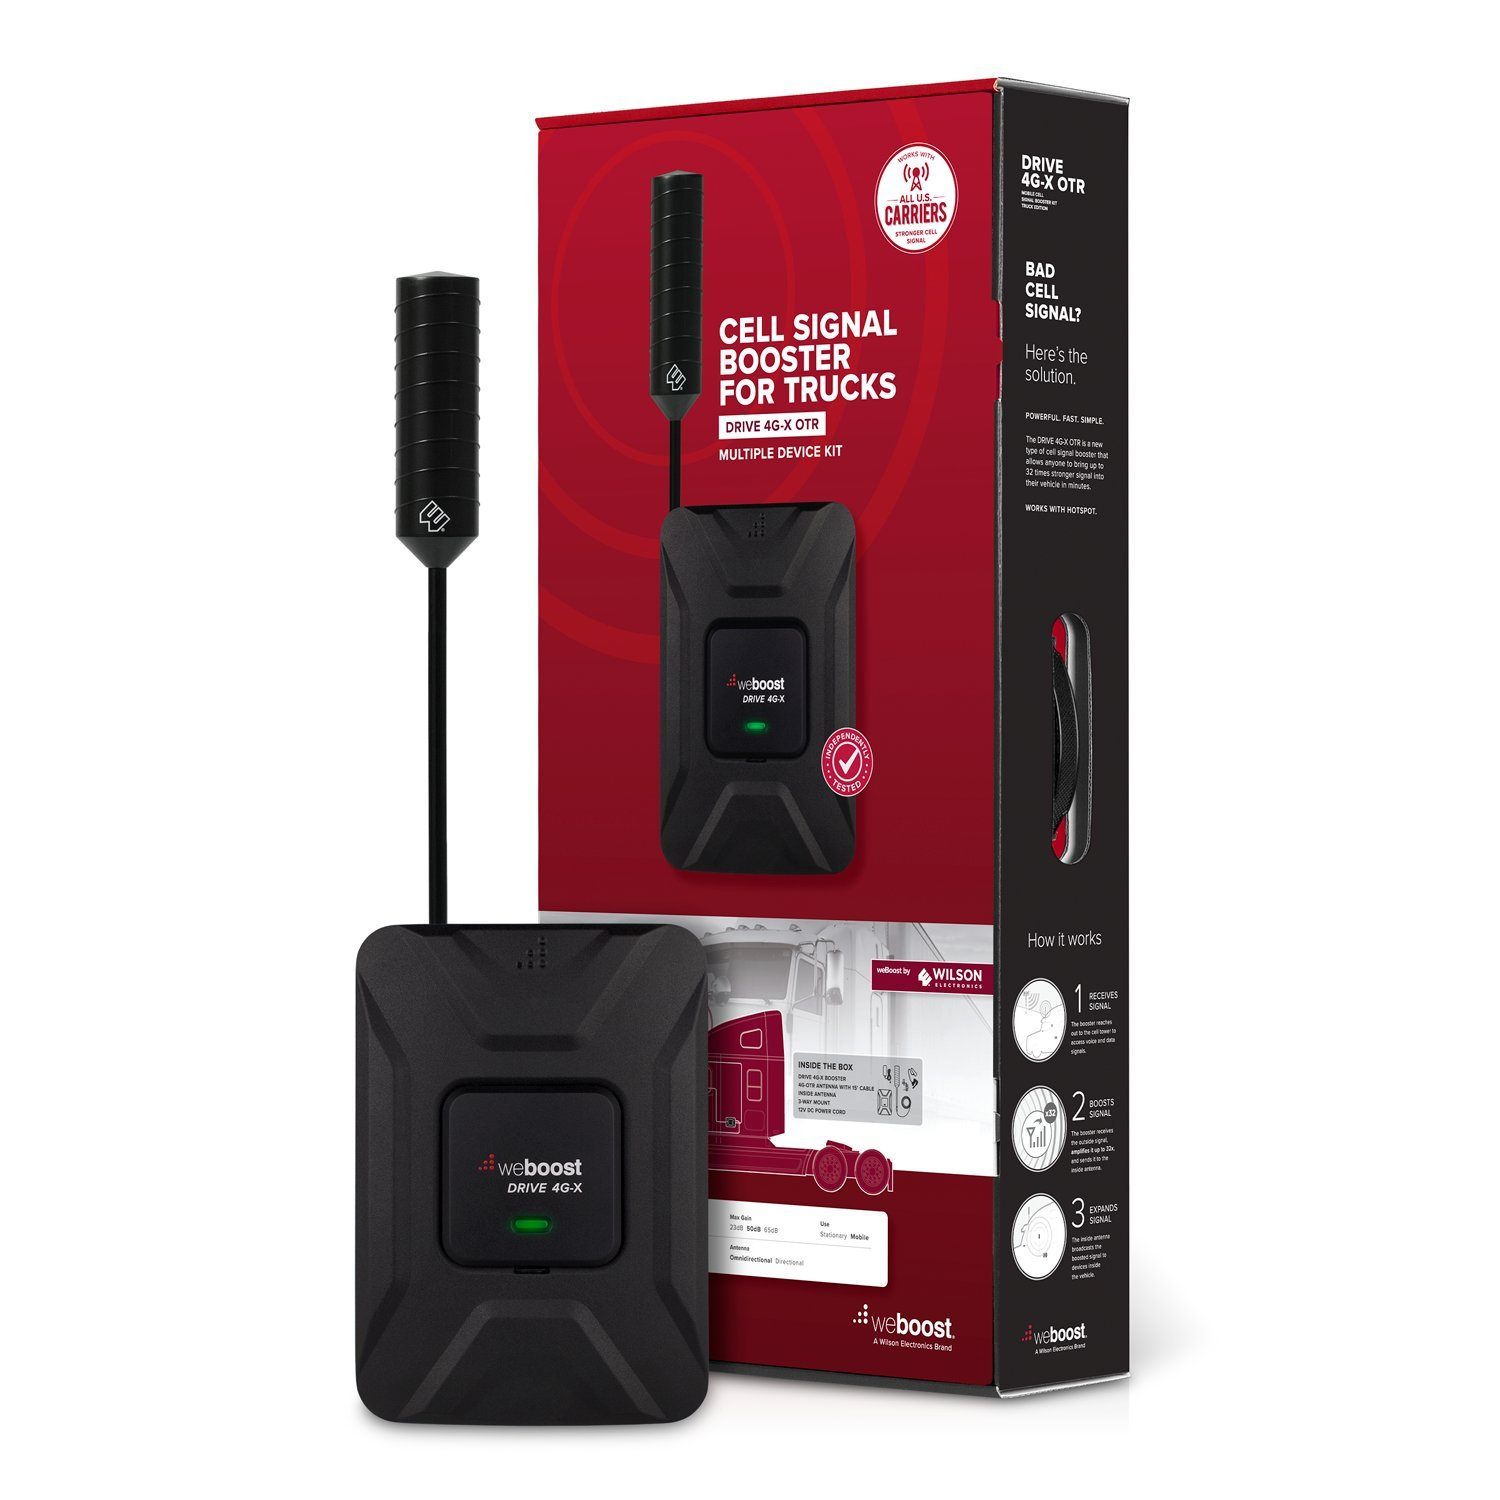 weBoost Drive 4G-X OTR (470210) Cell Phone Signal Booster Trucker Kit - Verizon, AT&T, T-Mobile, Sprint - Enhance Your Cell Phone Signal up to 32x by weBoost